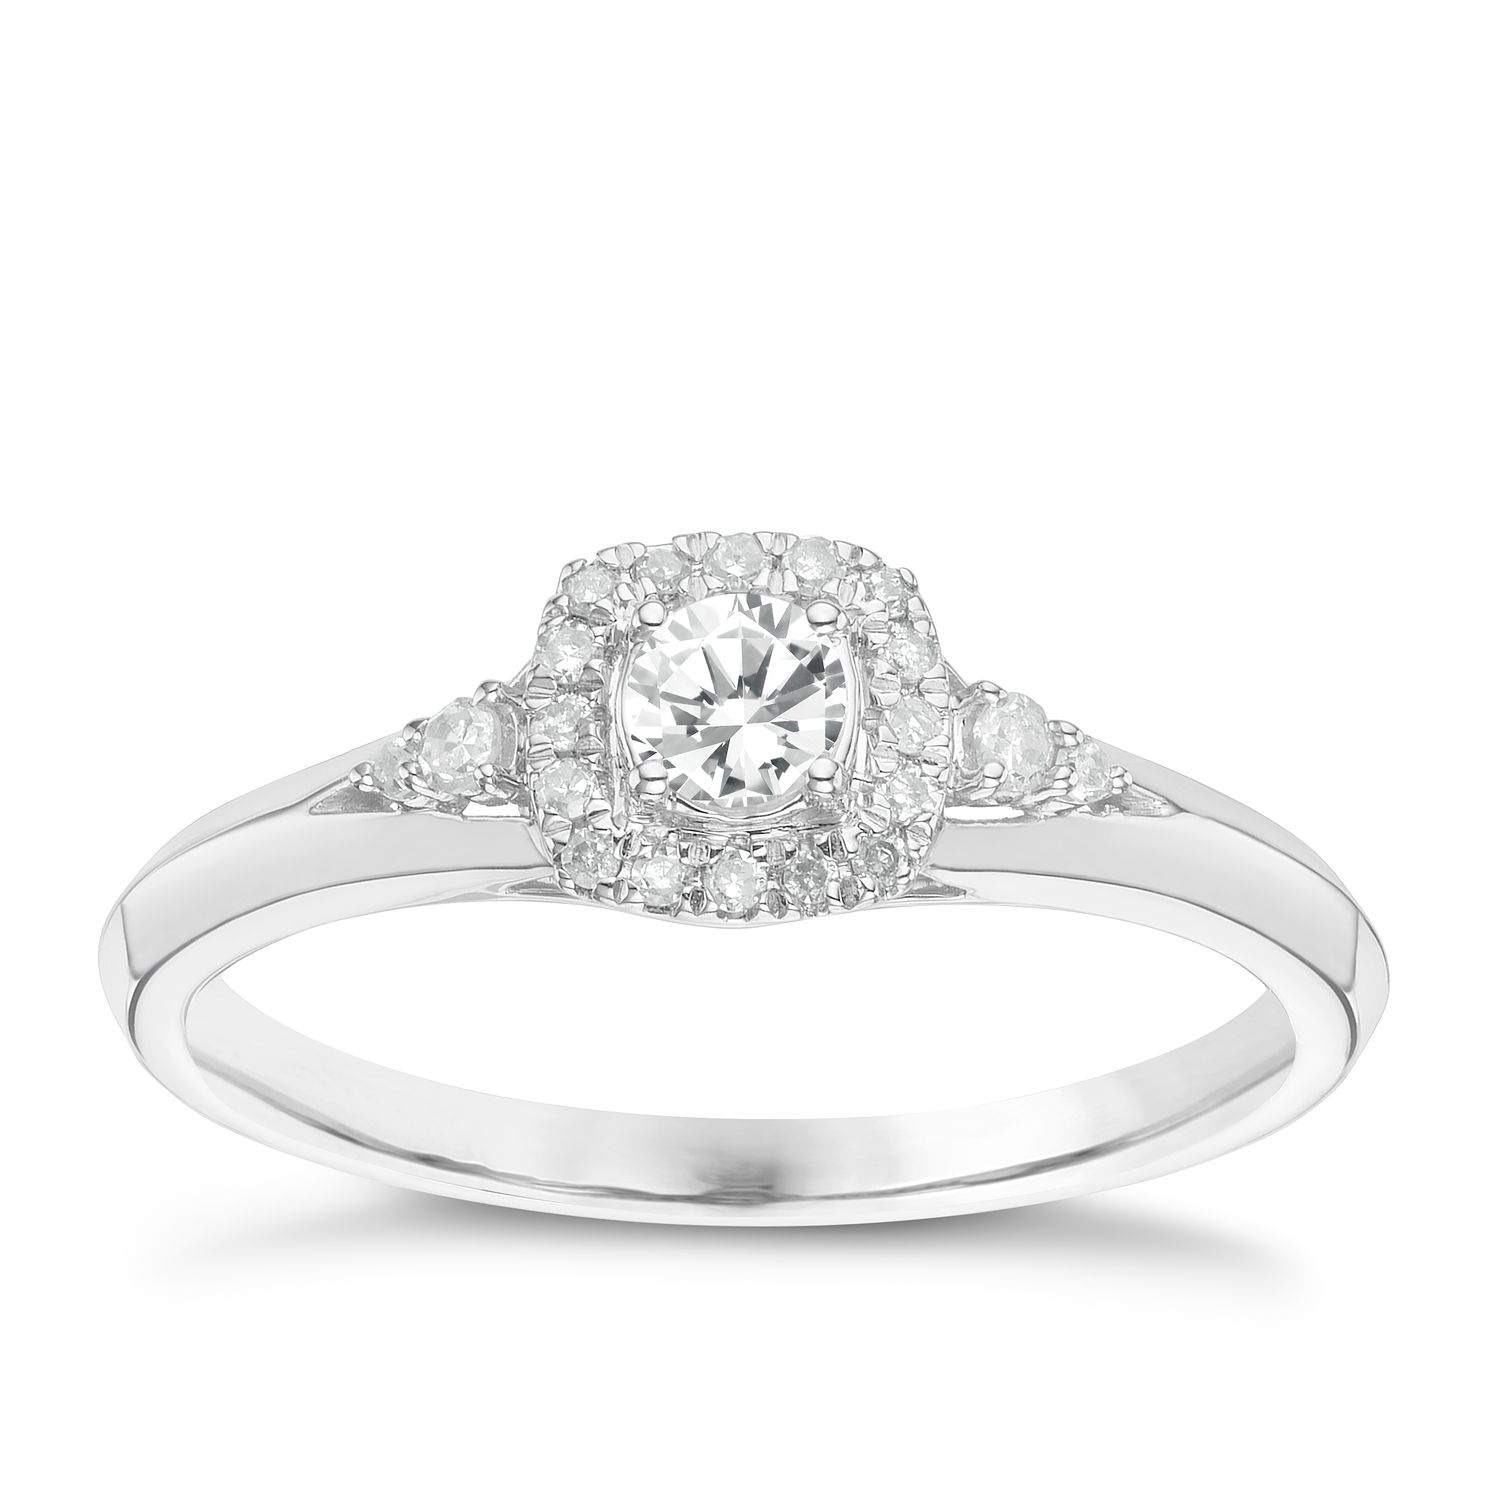 9ct White Gold 0.25ct Total Diamond Solitaire Ring - Product number 6242375